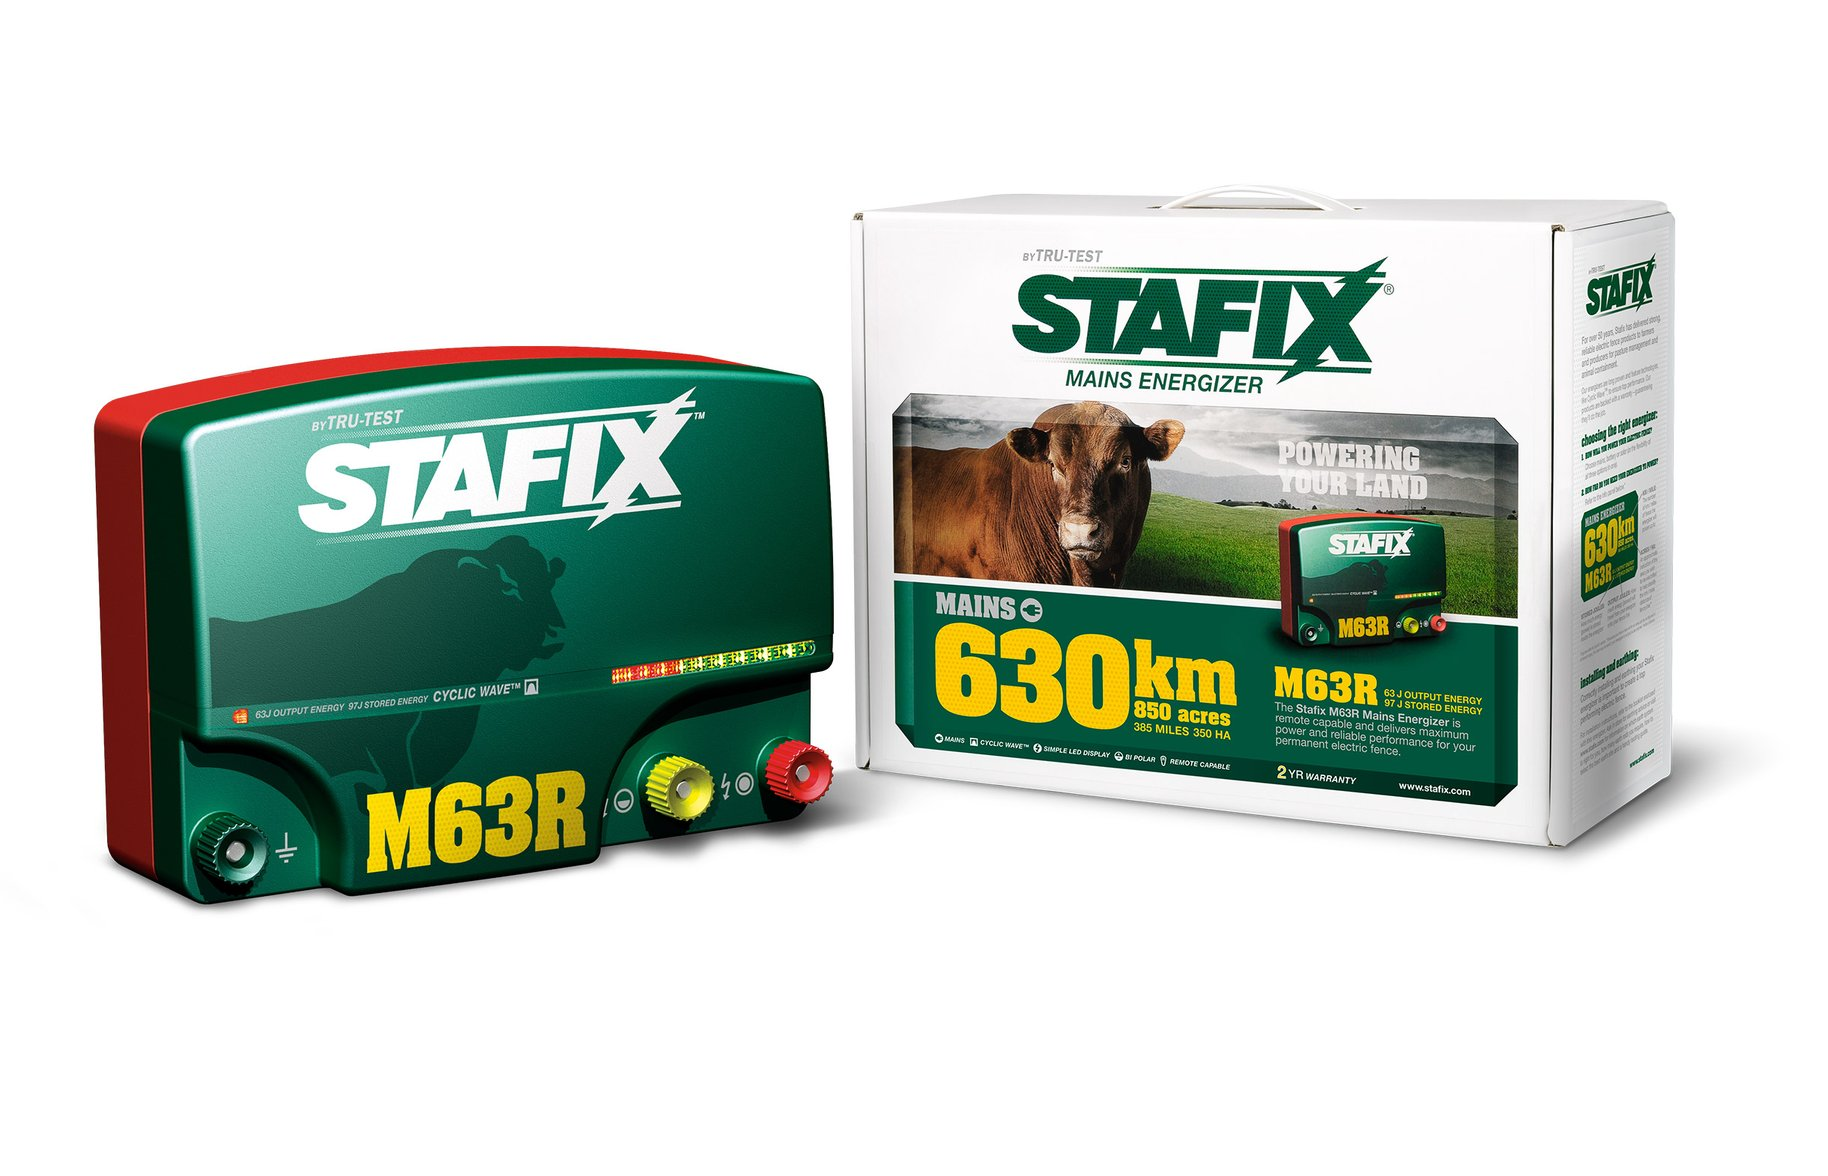 Stafix mains energizer packaging